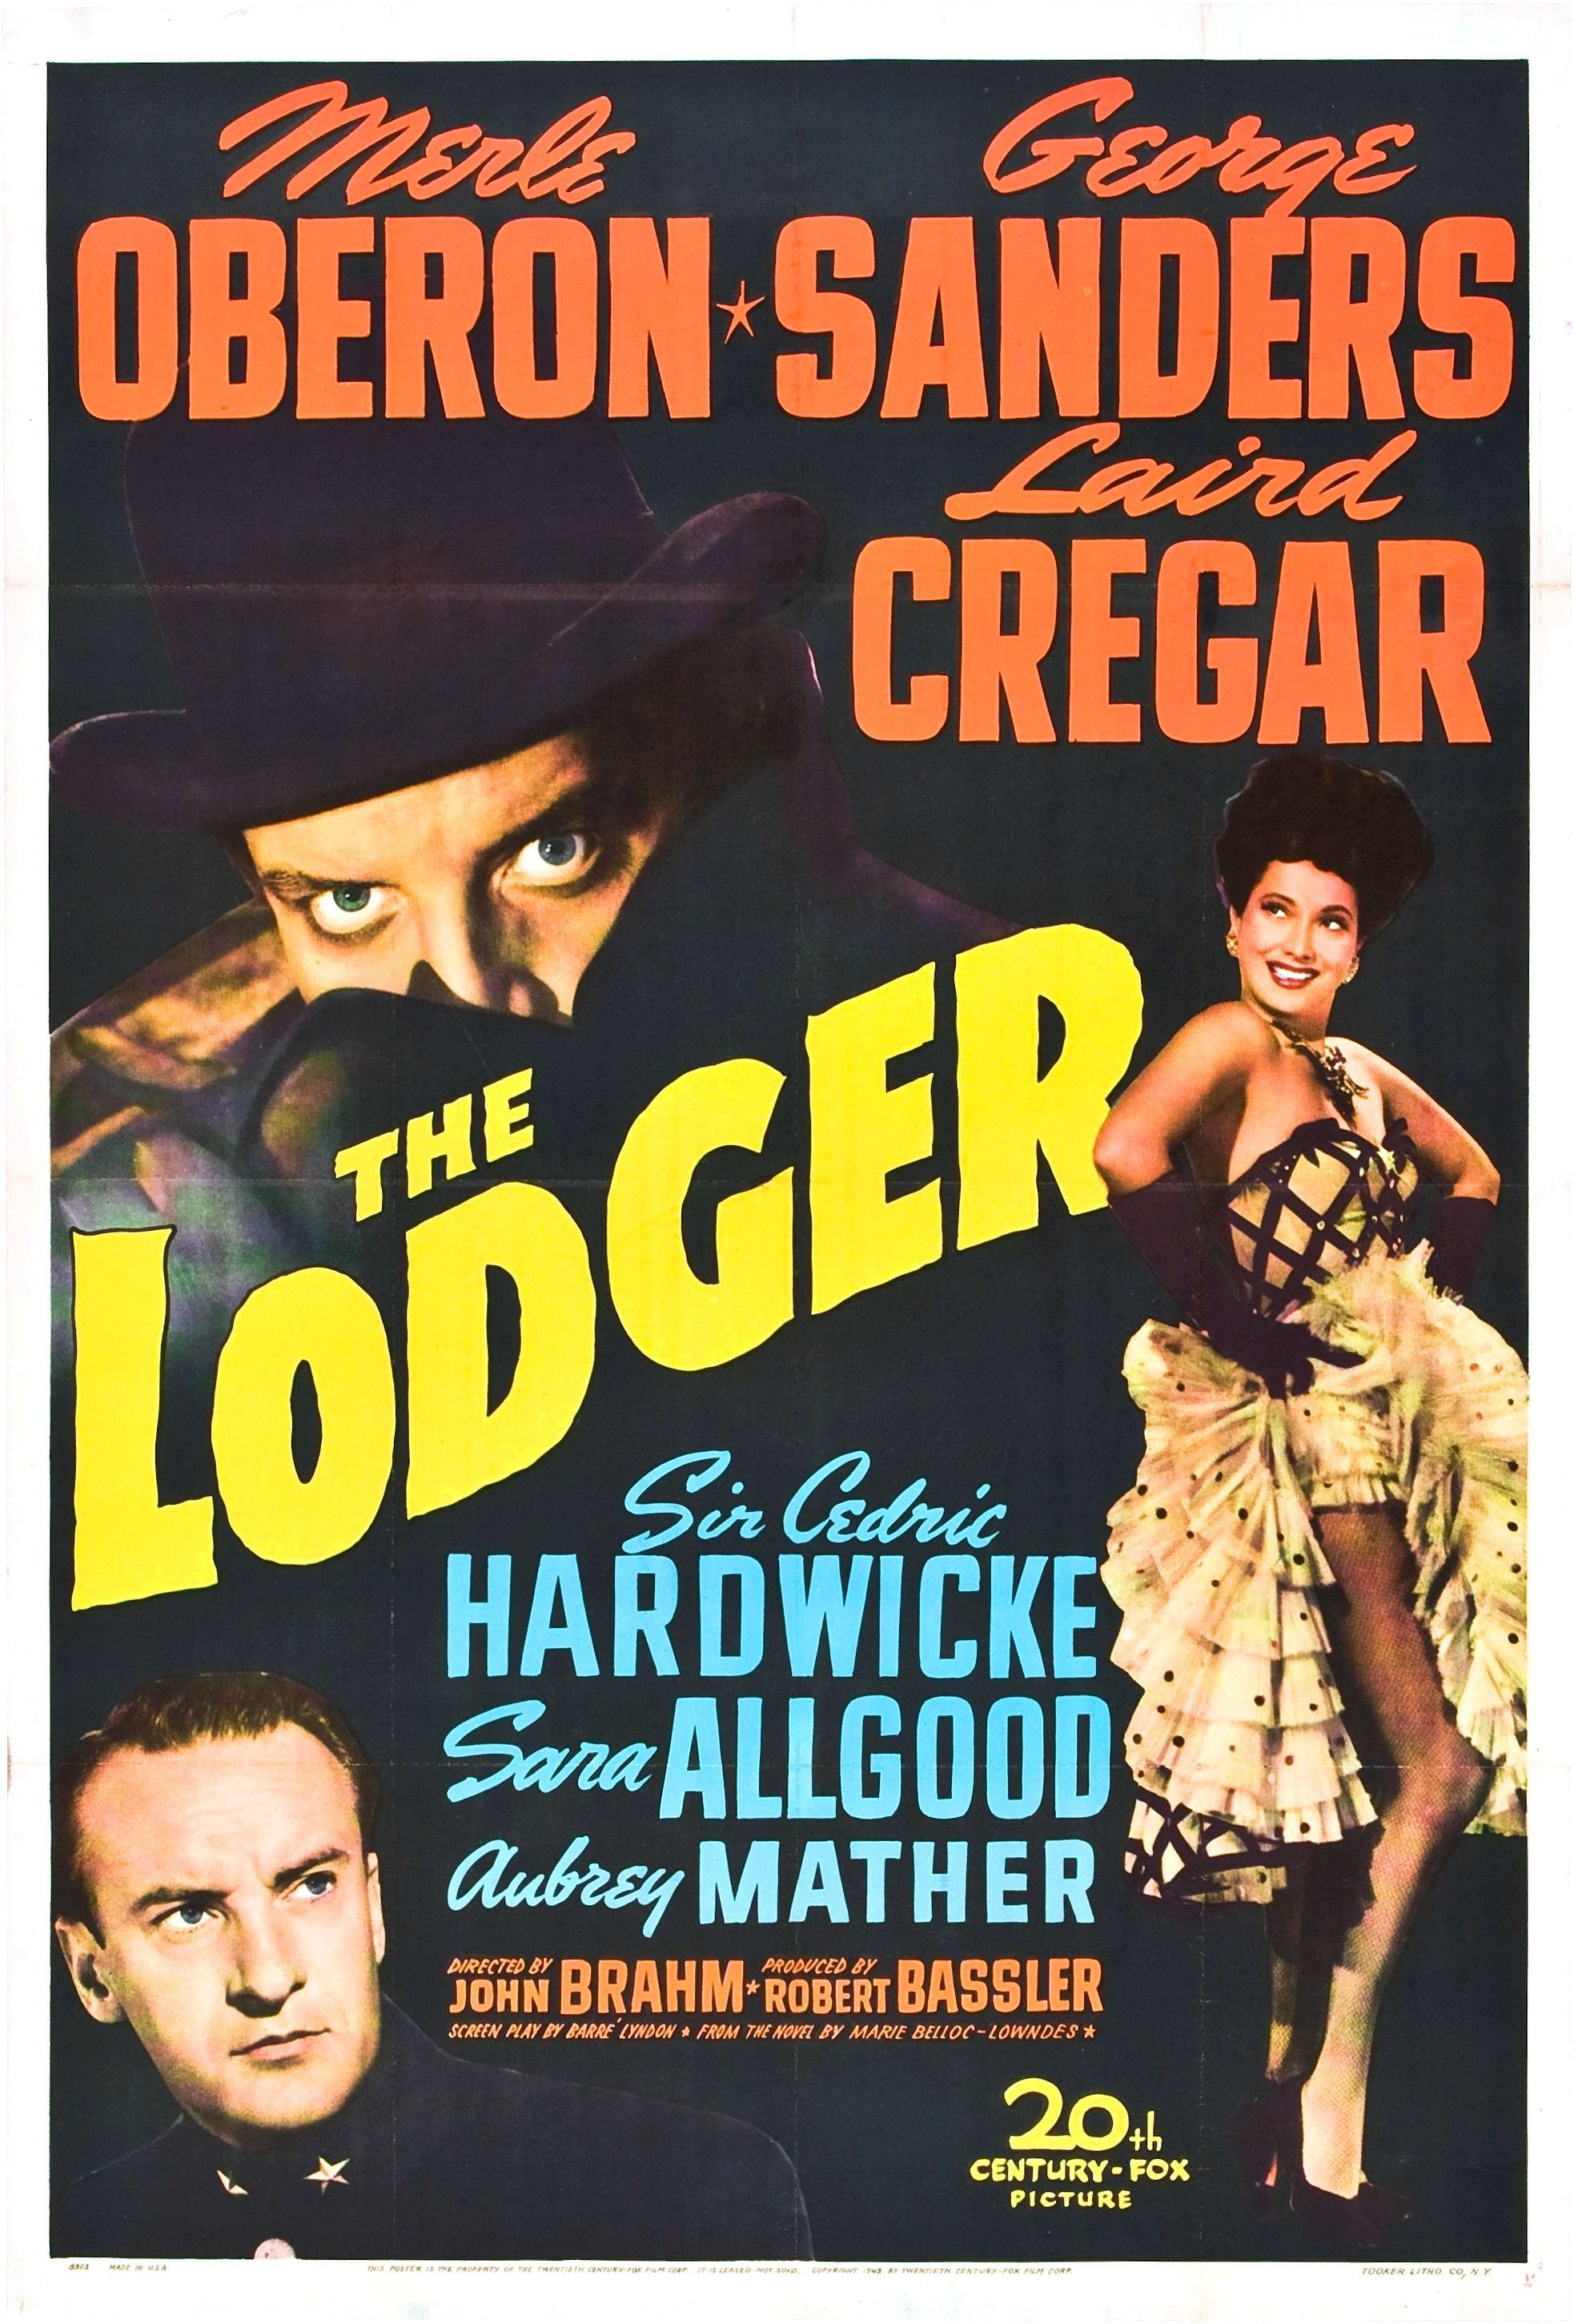 The Lodger (1944)